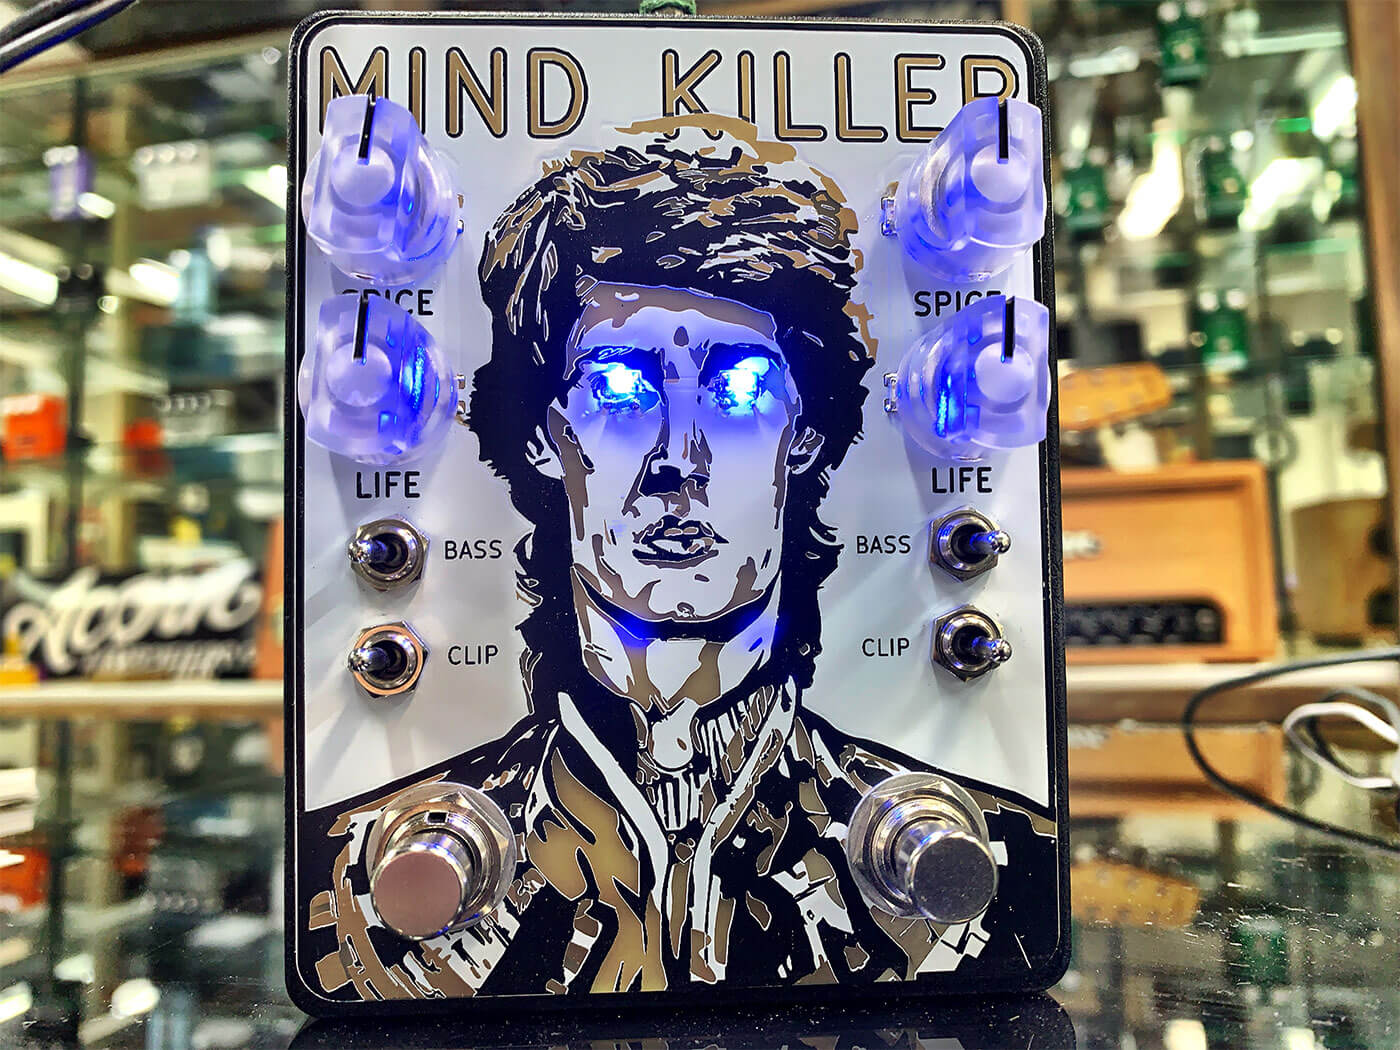 The Mind Killer by Acorn Amps